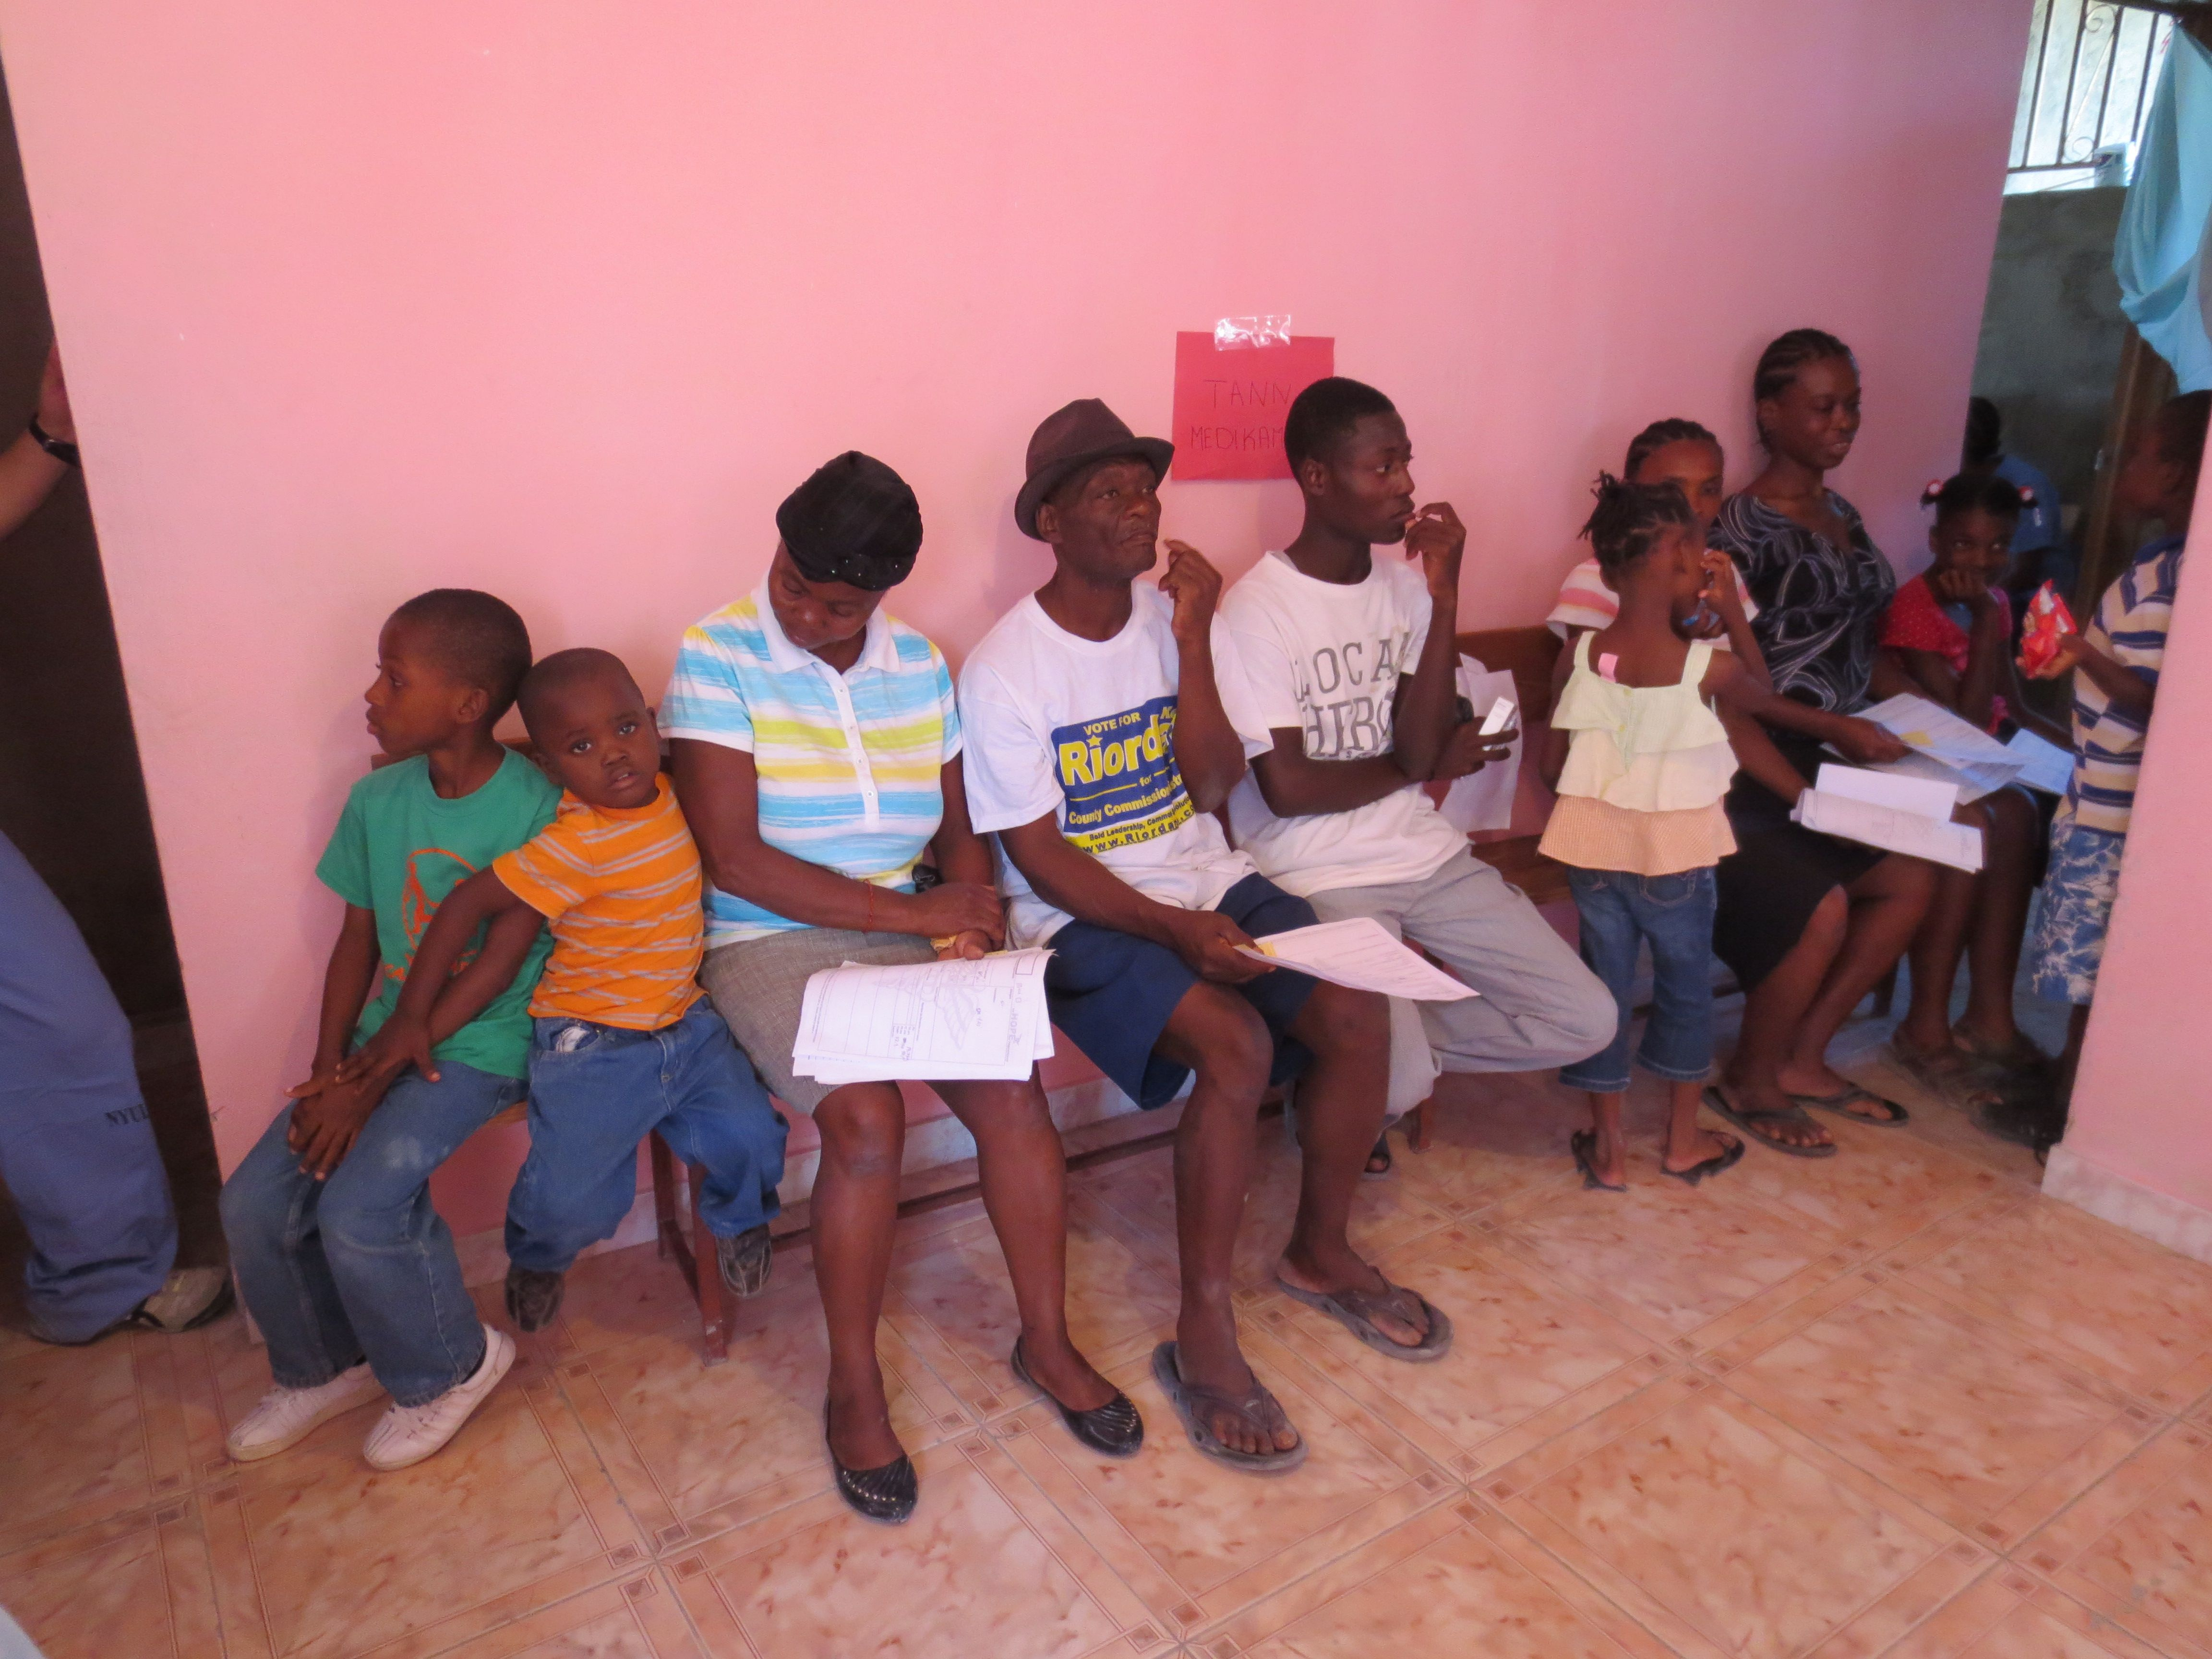 Haitians wait patiently for medical care medical care